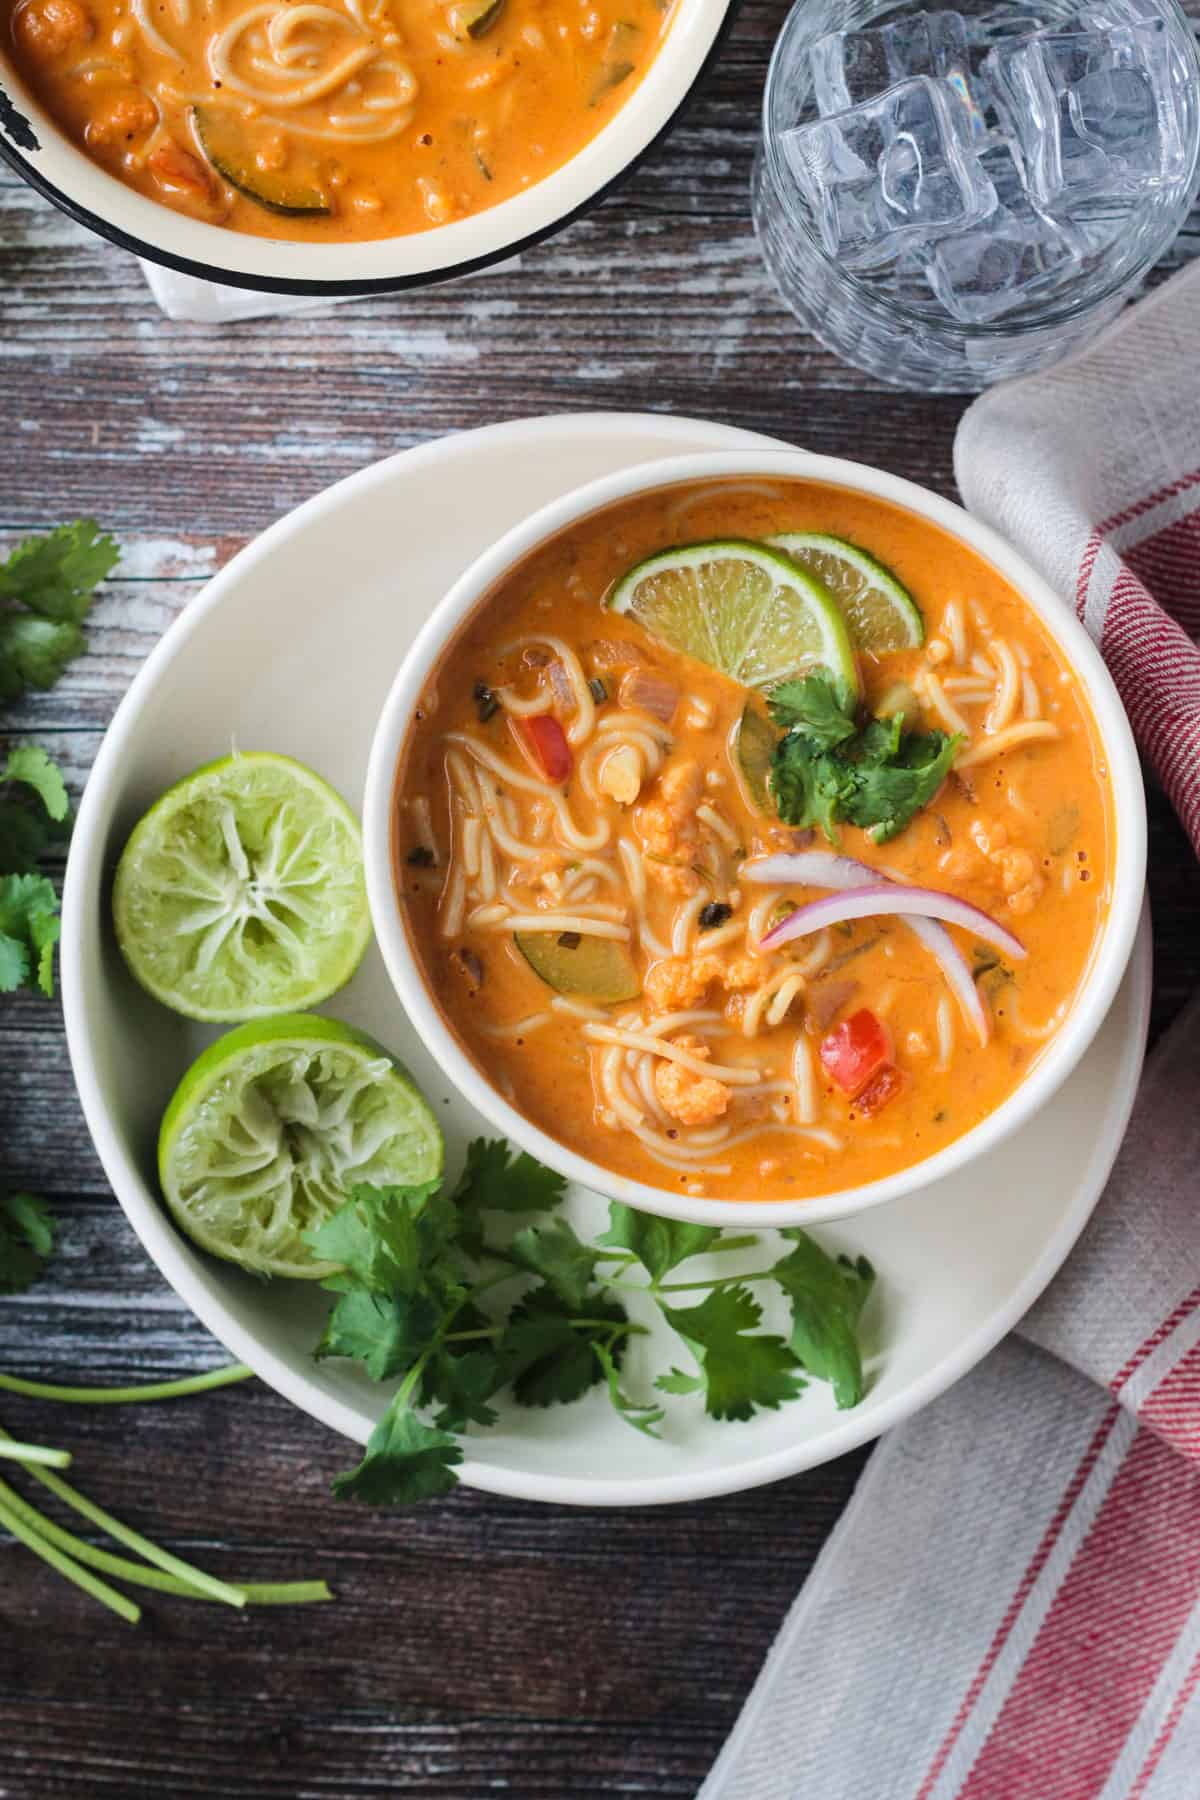 Red Curry Thai Noodle Soup in a white bowl next to lime halves and cilantro.